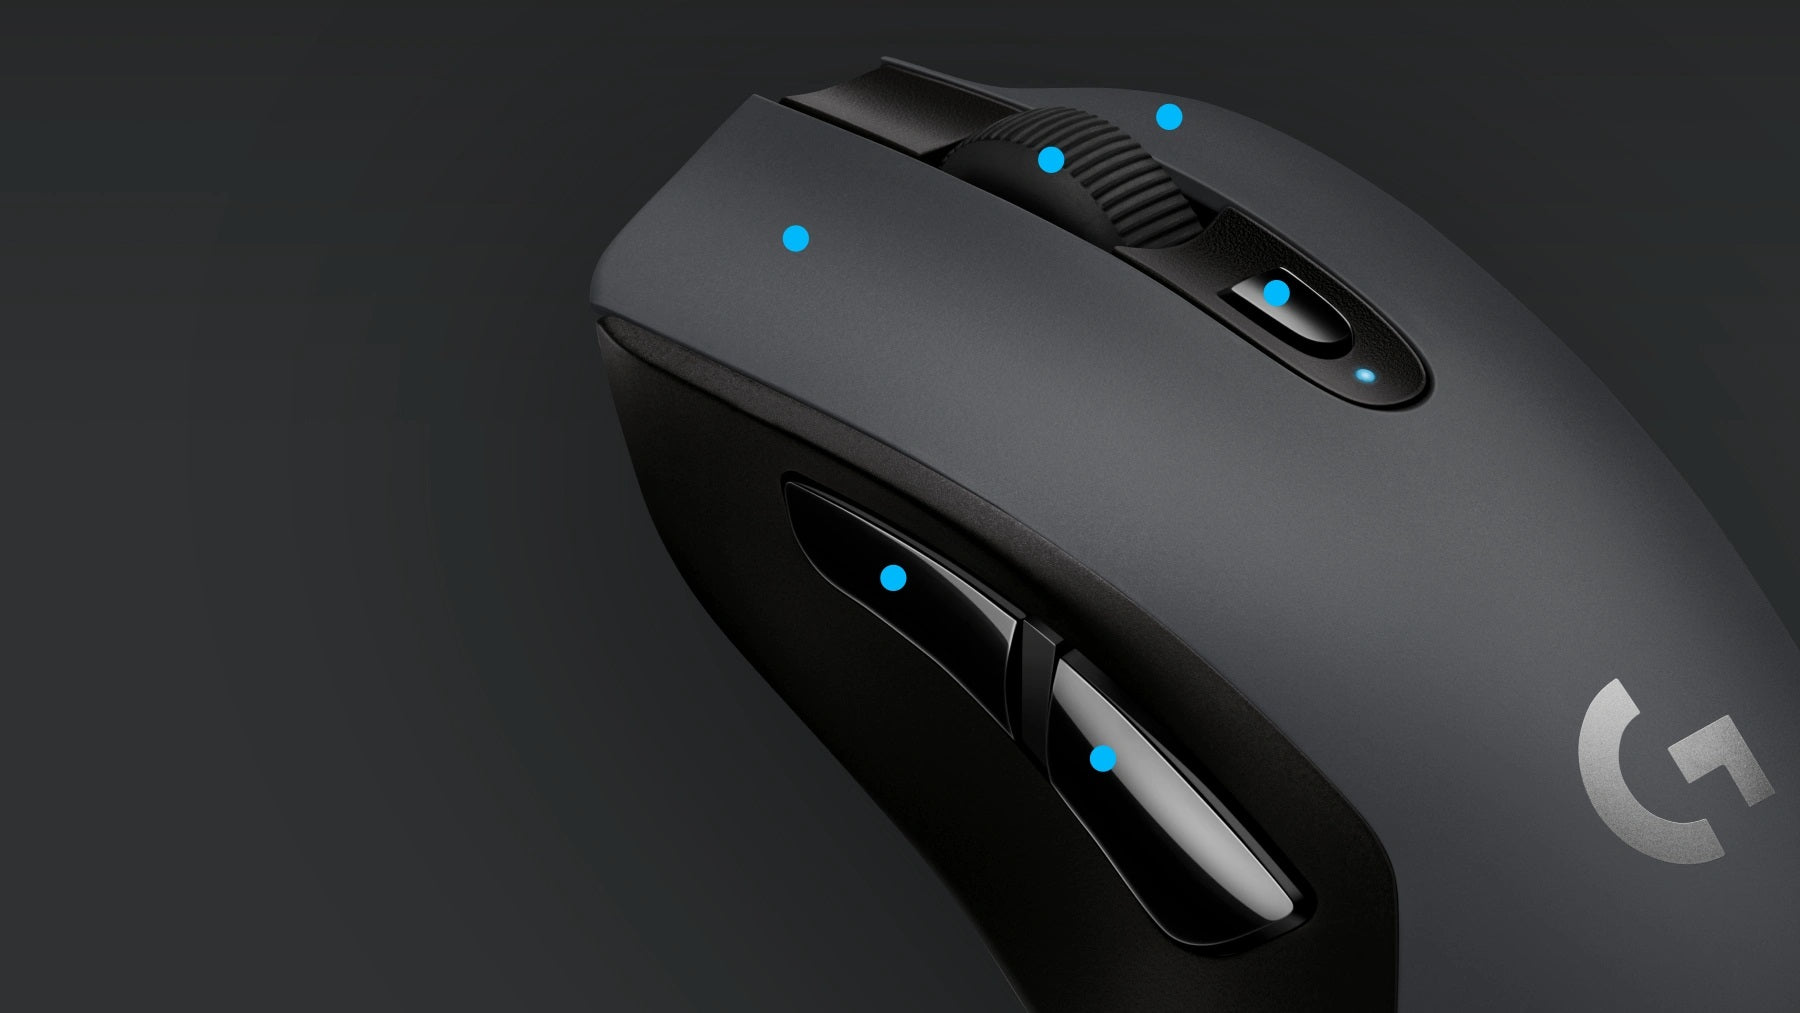 SIX PROGRAMMABLE BUTTONS - The G603 wireless gaming mouse can be fully configured to match your preferences. G603 comes with 6 programmable buttons including on-the-fly DPI shifting through up to 5 sensitivity settings. Use G HUB to assign custom commands, configure macros (sequences of clicks and keystrokes to simplify in-game actions and quickly execute complex tasks), store configuration profiles in the onboard memory, and more.